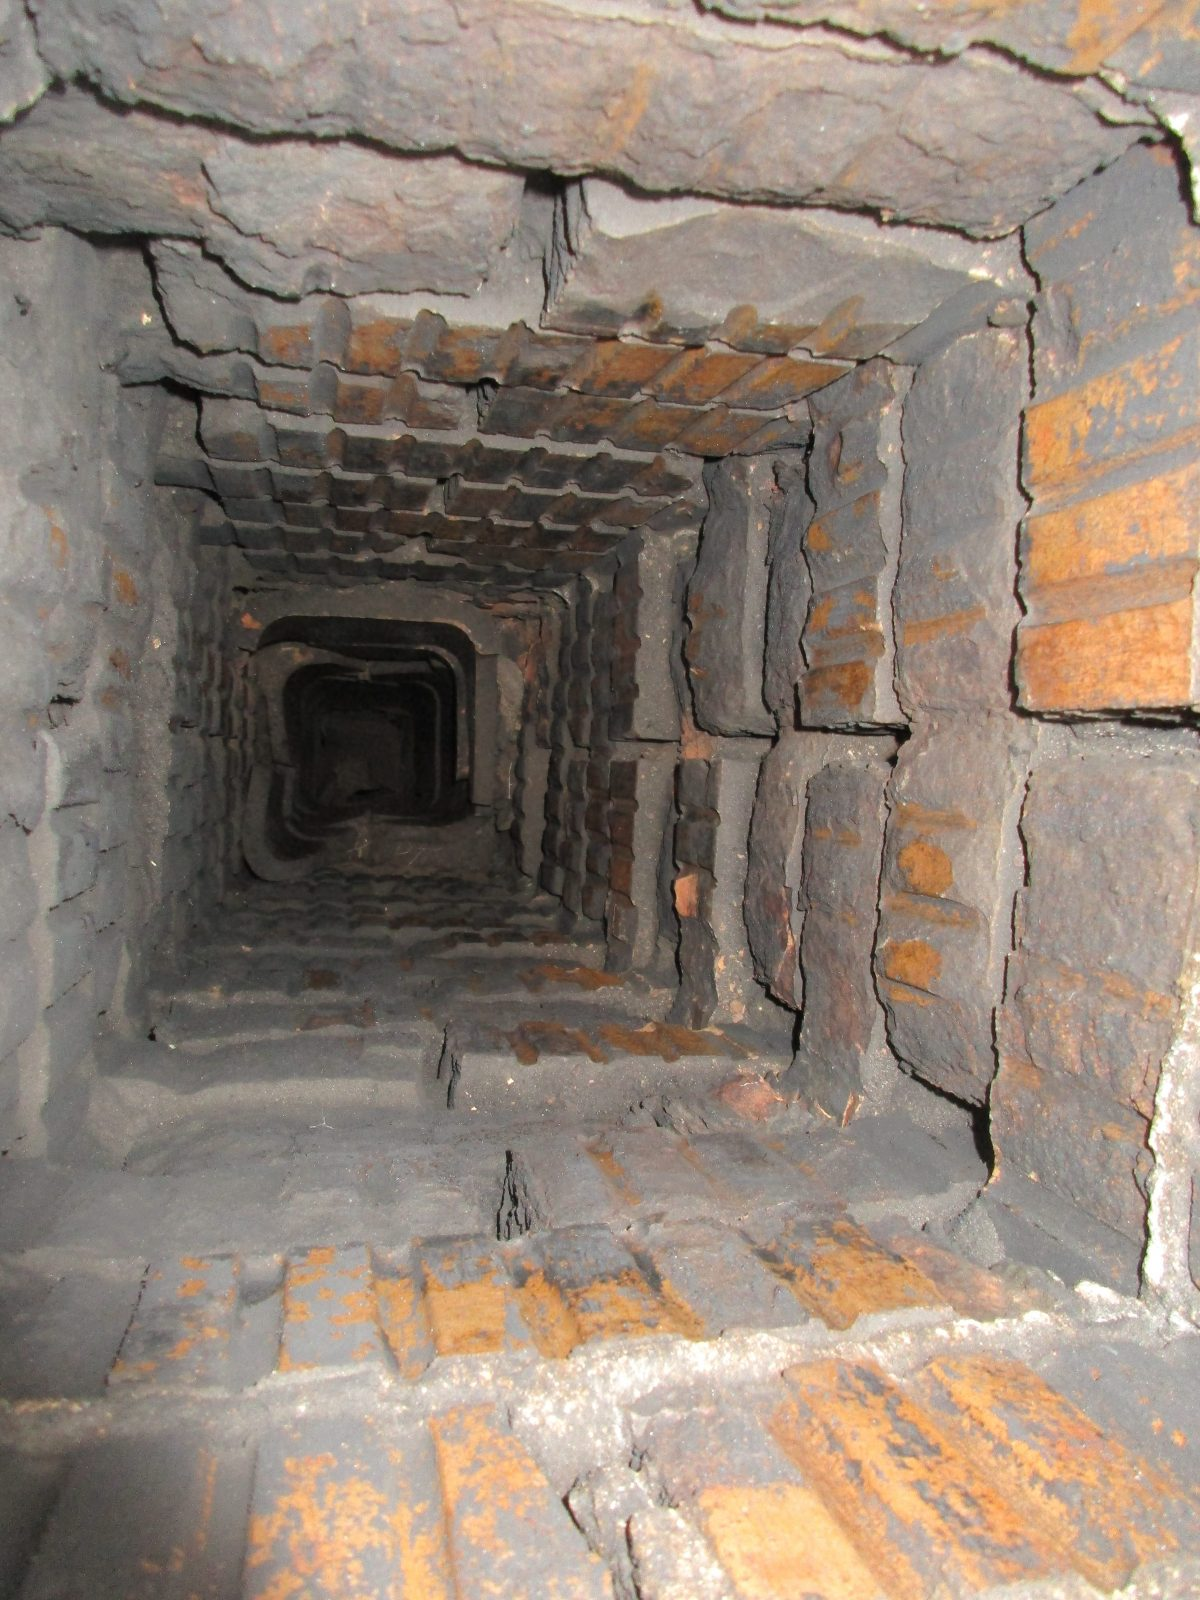 Interior View of Unlined Chimney